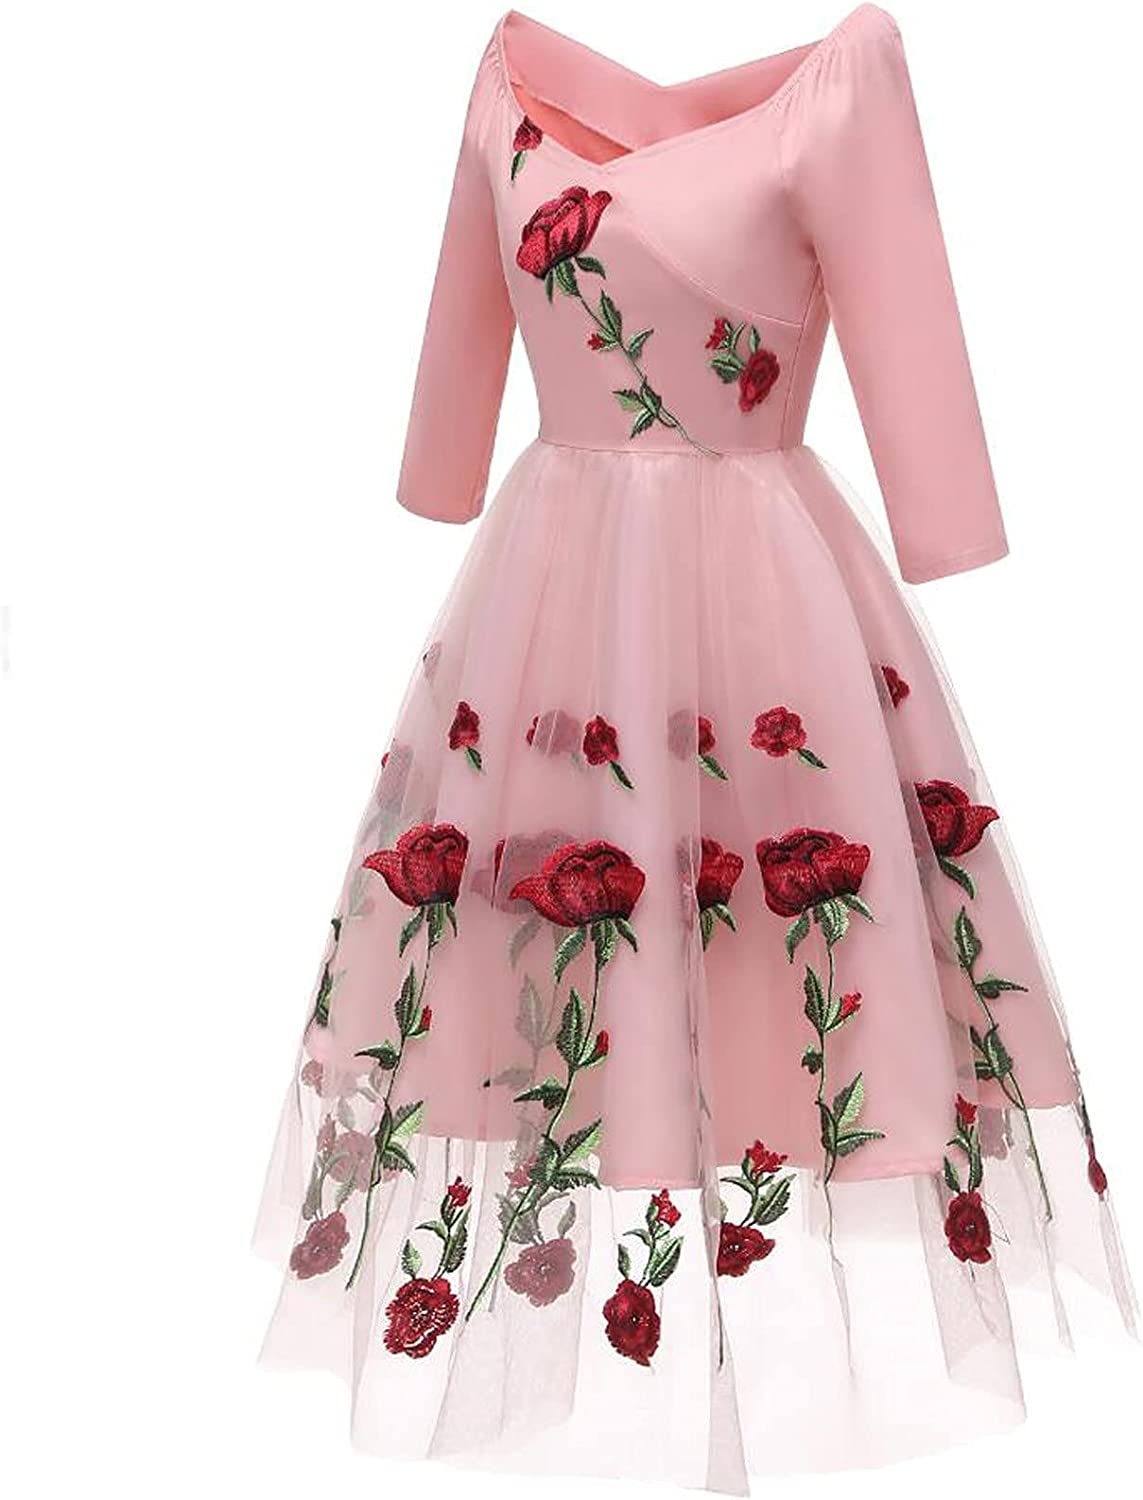 Women Elegant Midi Dress for Formal Cocktail, Lace Flower Printed Fall Long Sleeve 3/4 Sleeve Casual Flared Midi Dress